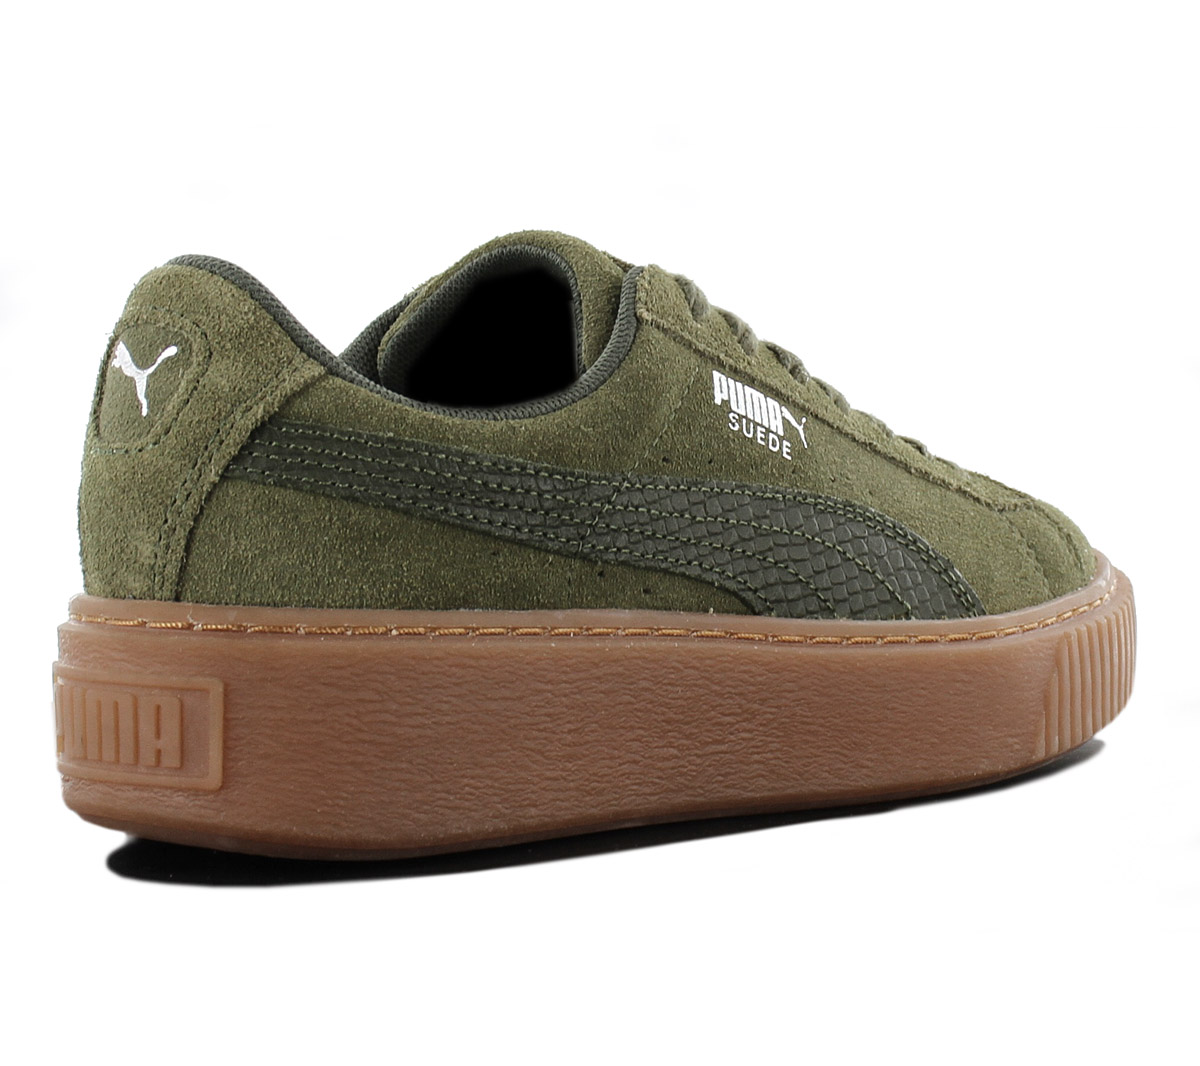 e53645bc187f Puma Suede Platform Animal Women s Sneakers Leather Shoes 365109-03 ...